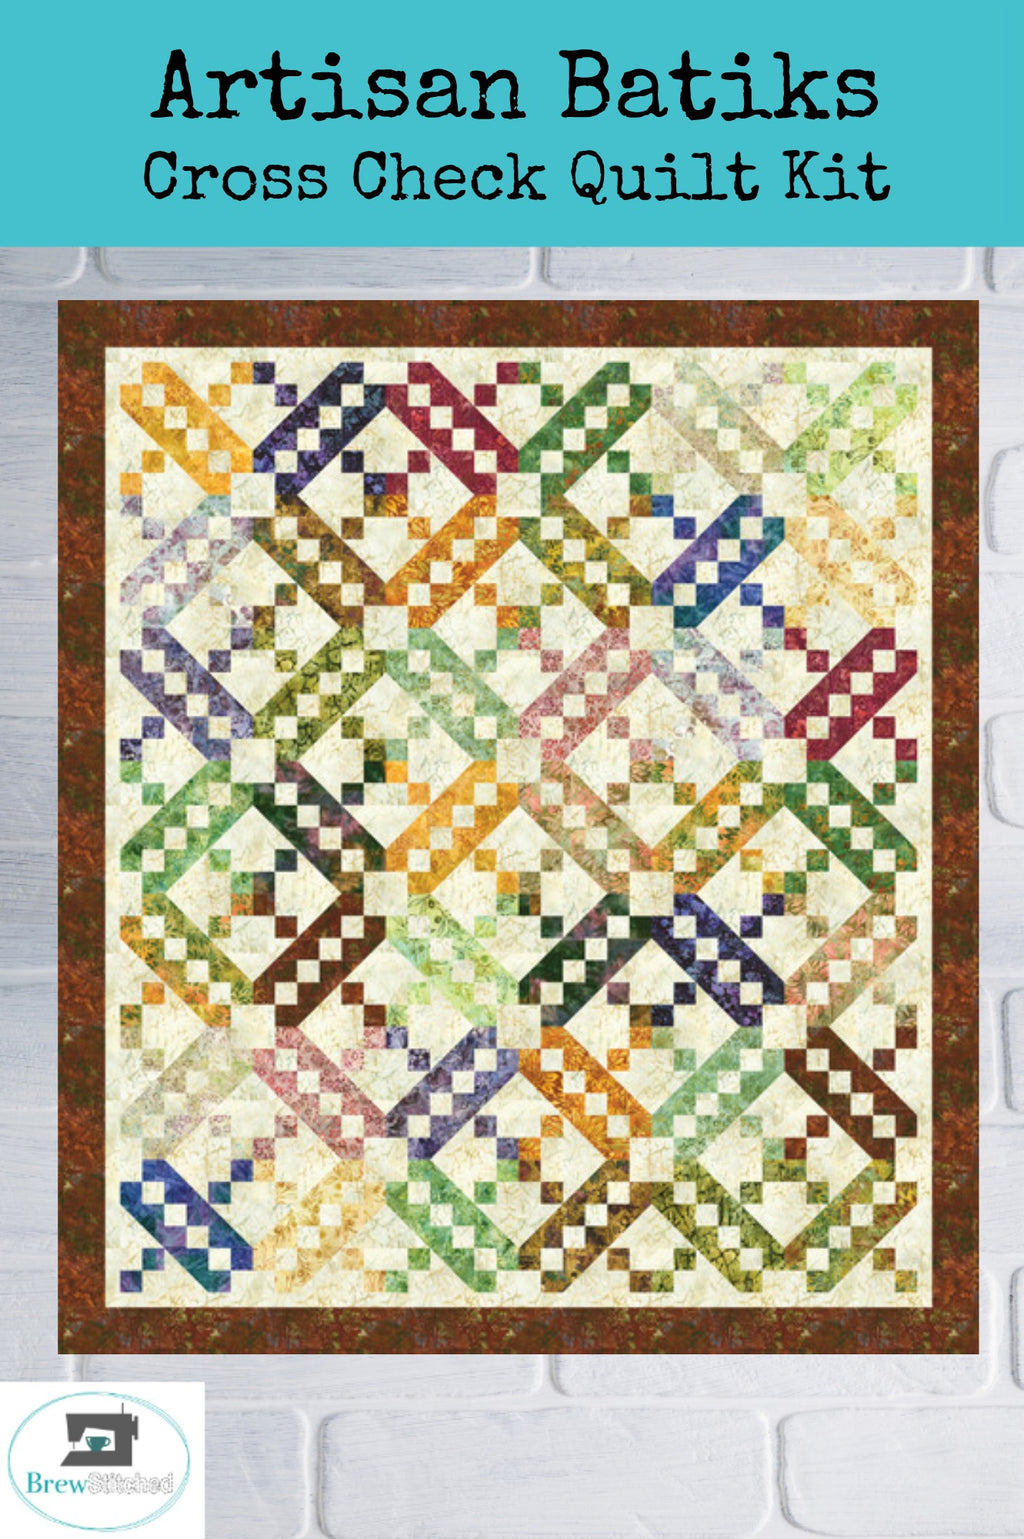 Artisan Batiks Cross Check Quilt Kit - brewstitched.com